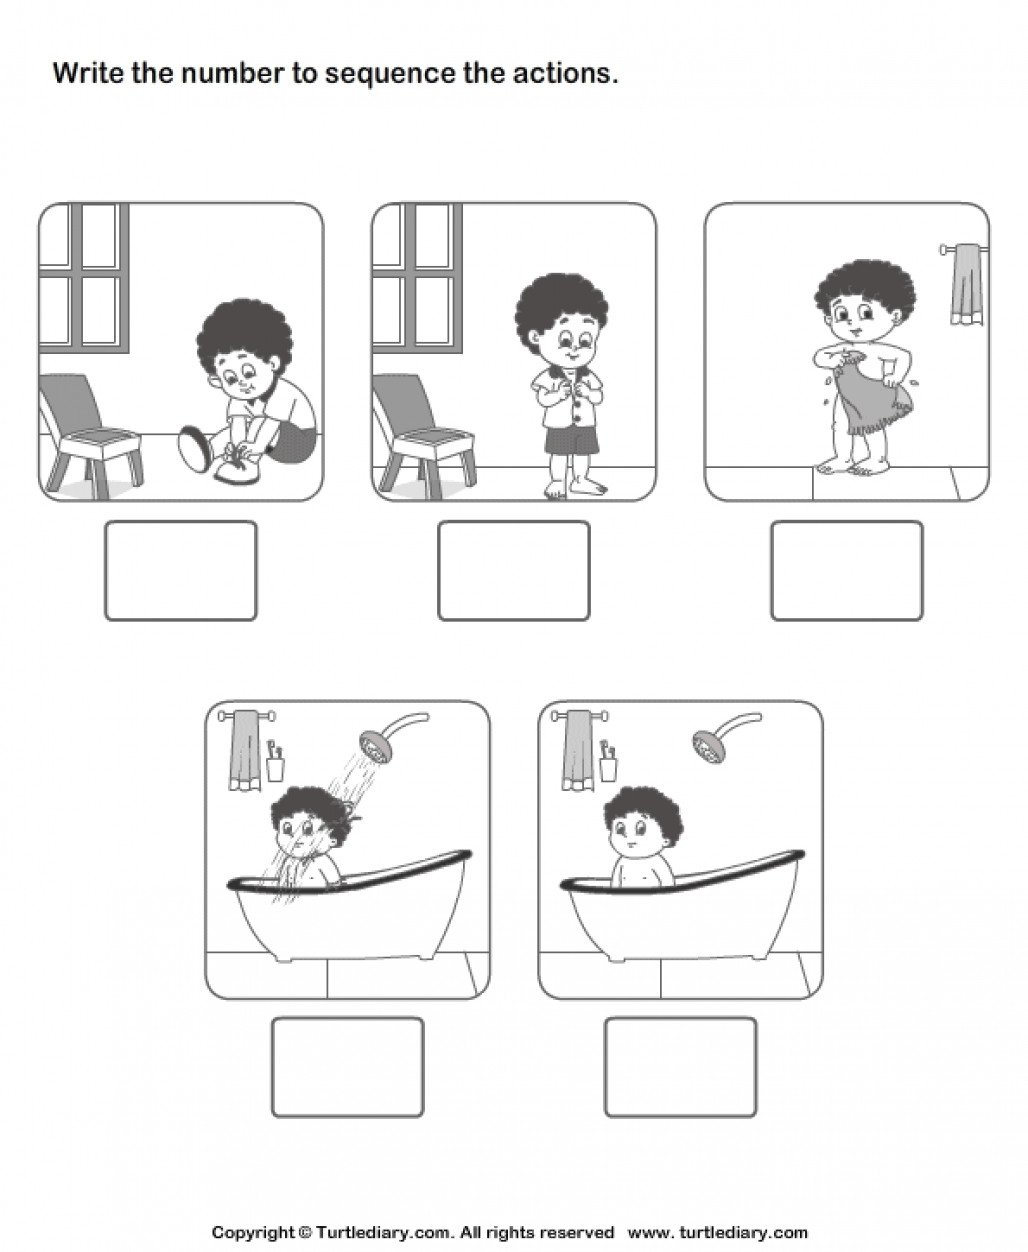 sequencing events worksheet sequencing events worksheets for kindergarten capable likewise picture boy dressing up sequence worksheets large